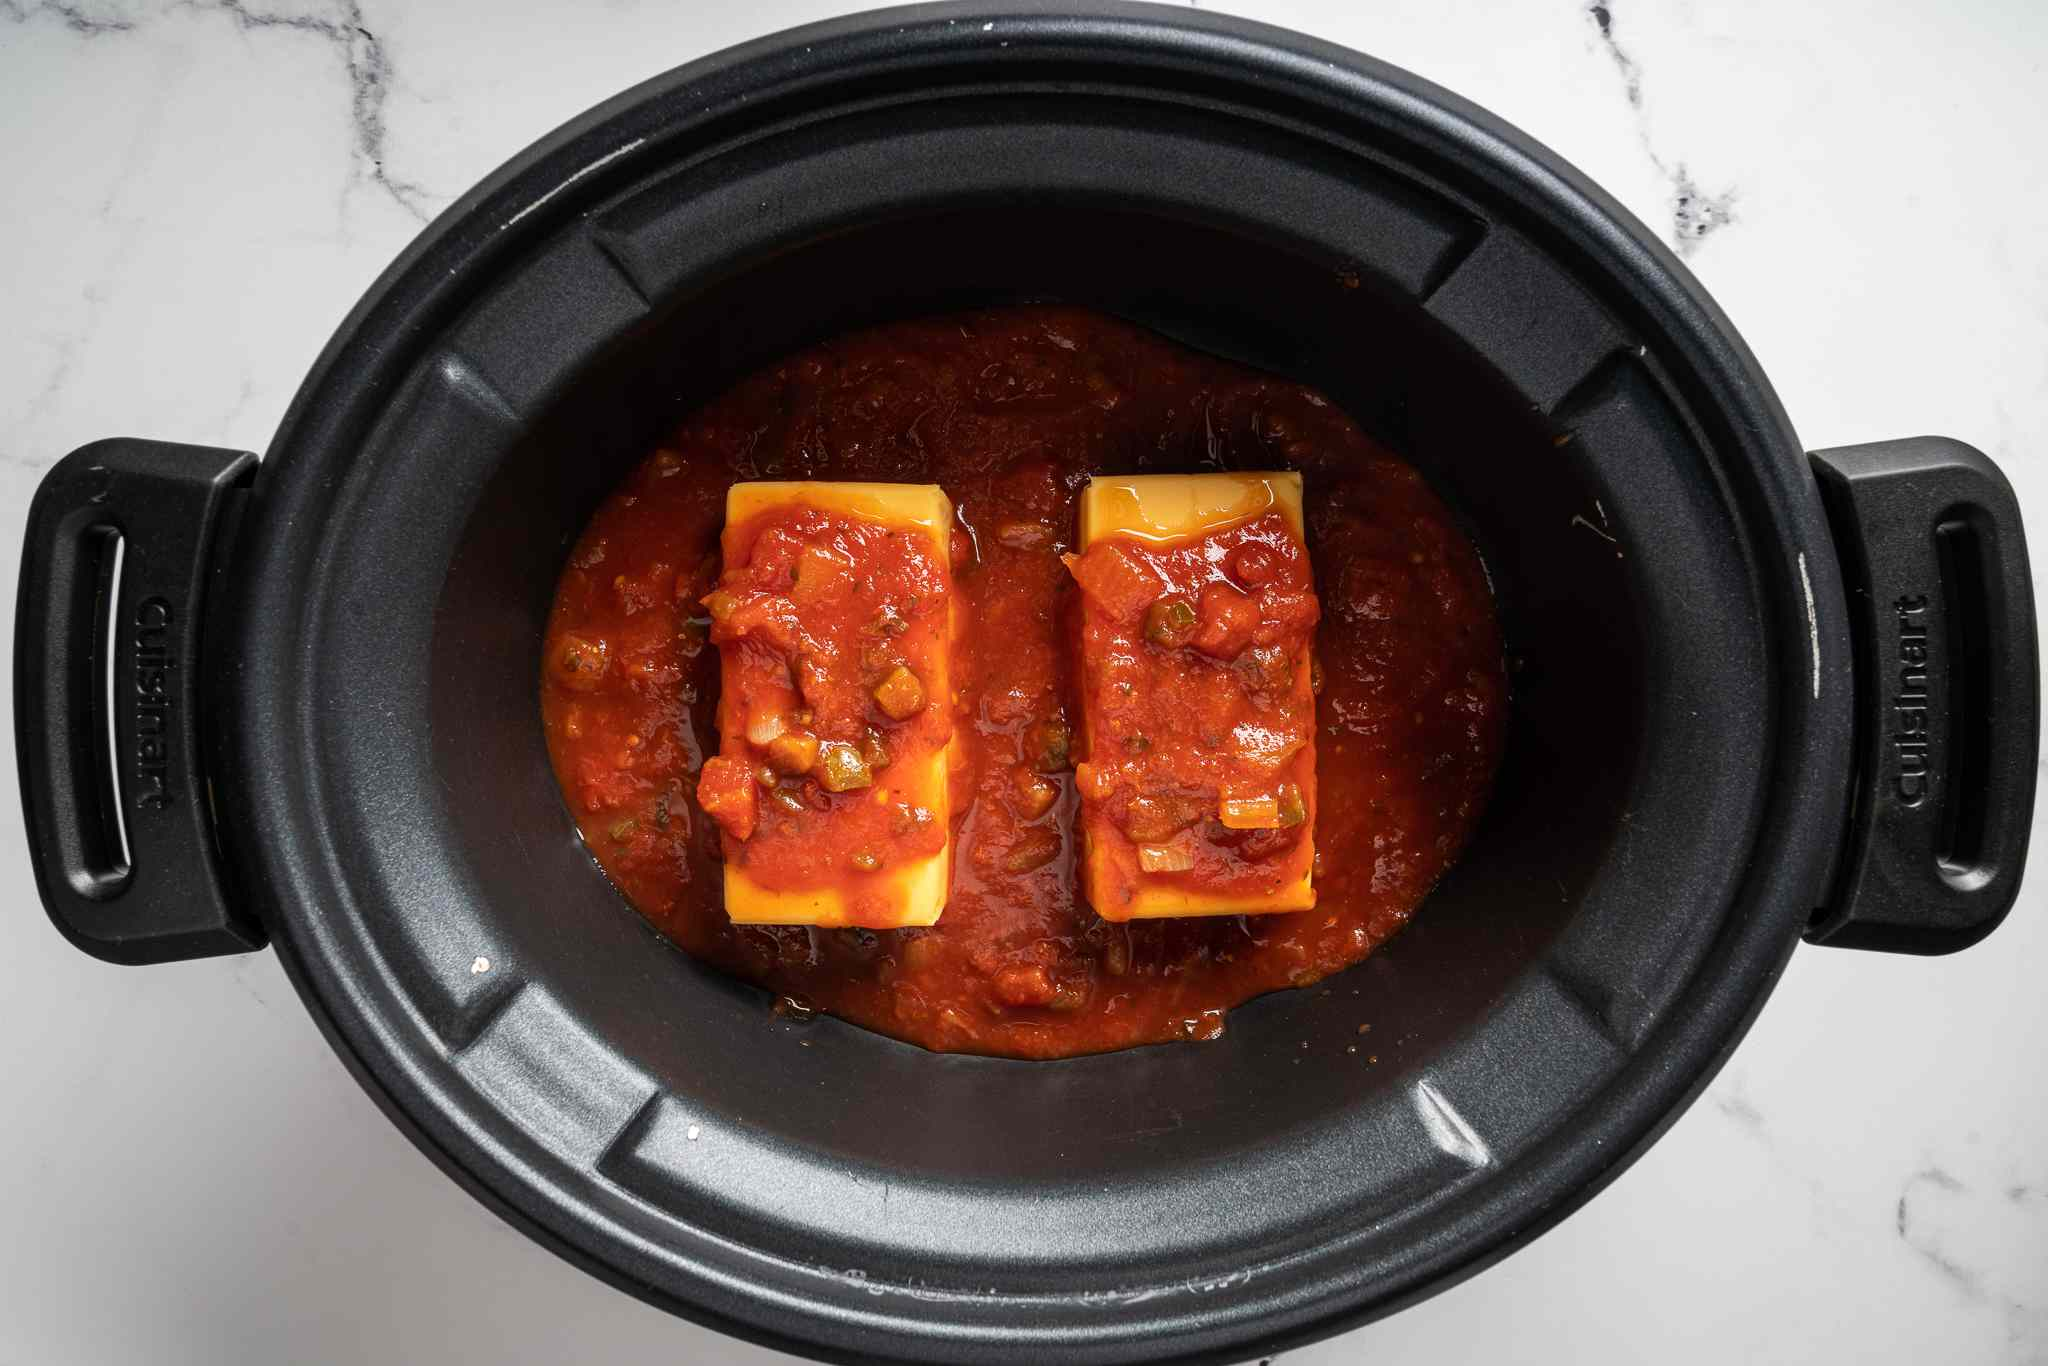 salsa and cheese in a slow cooker